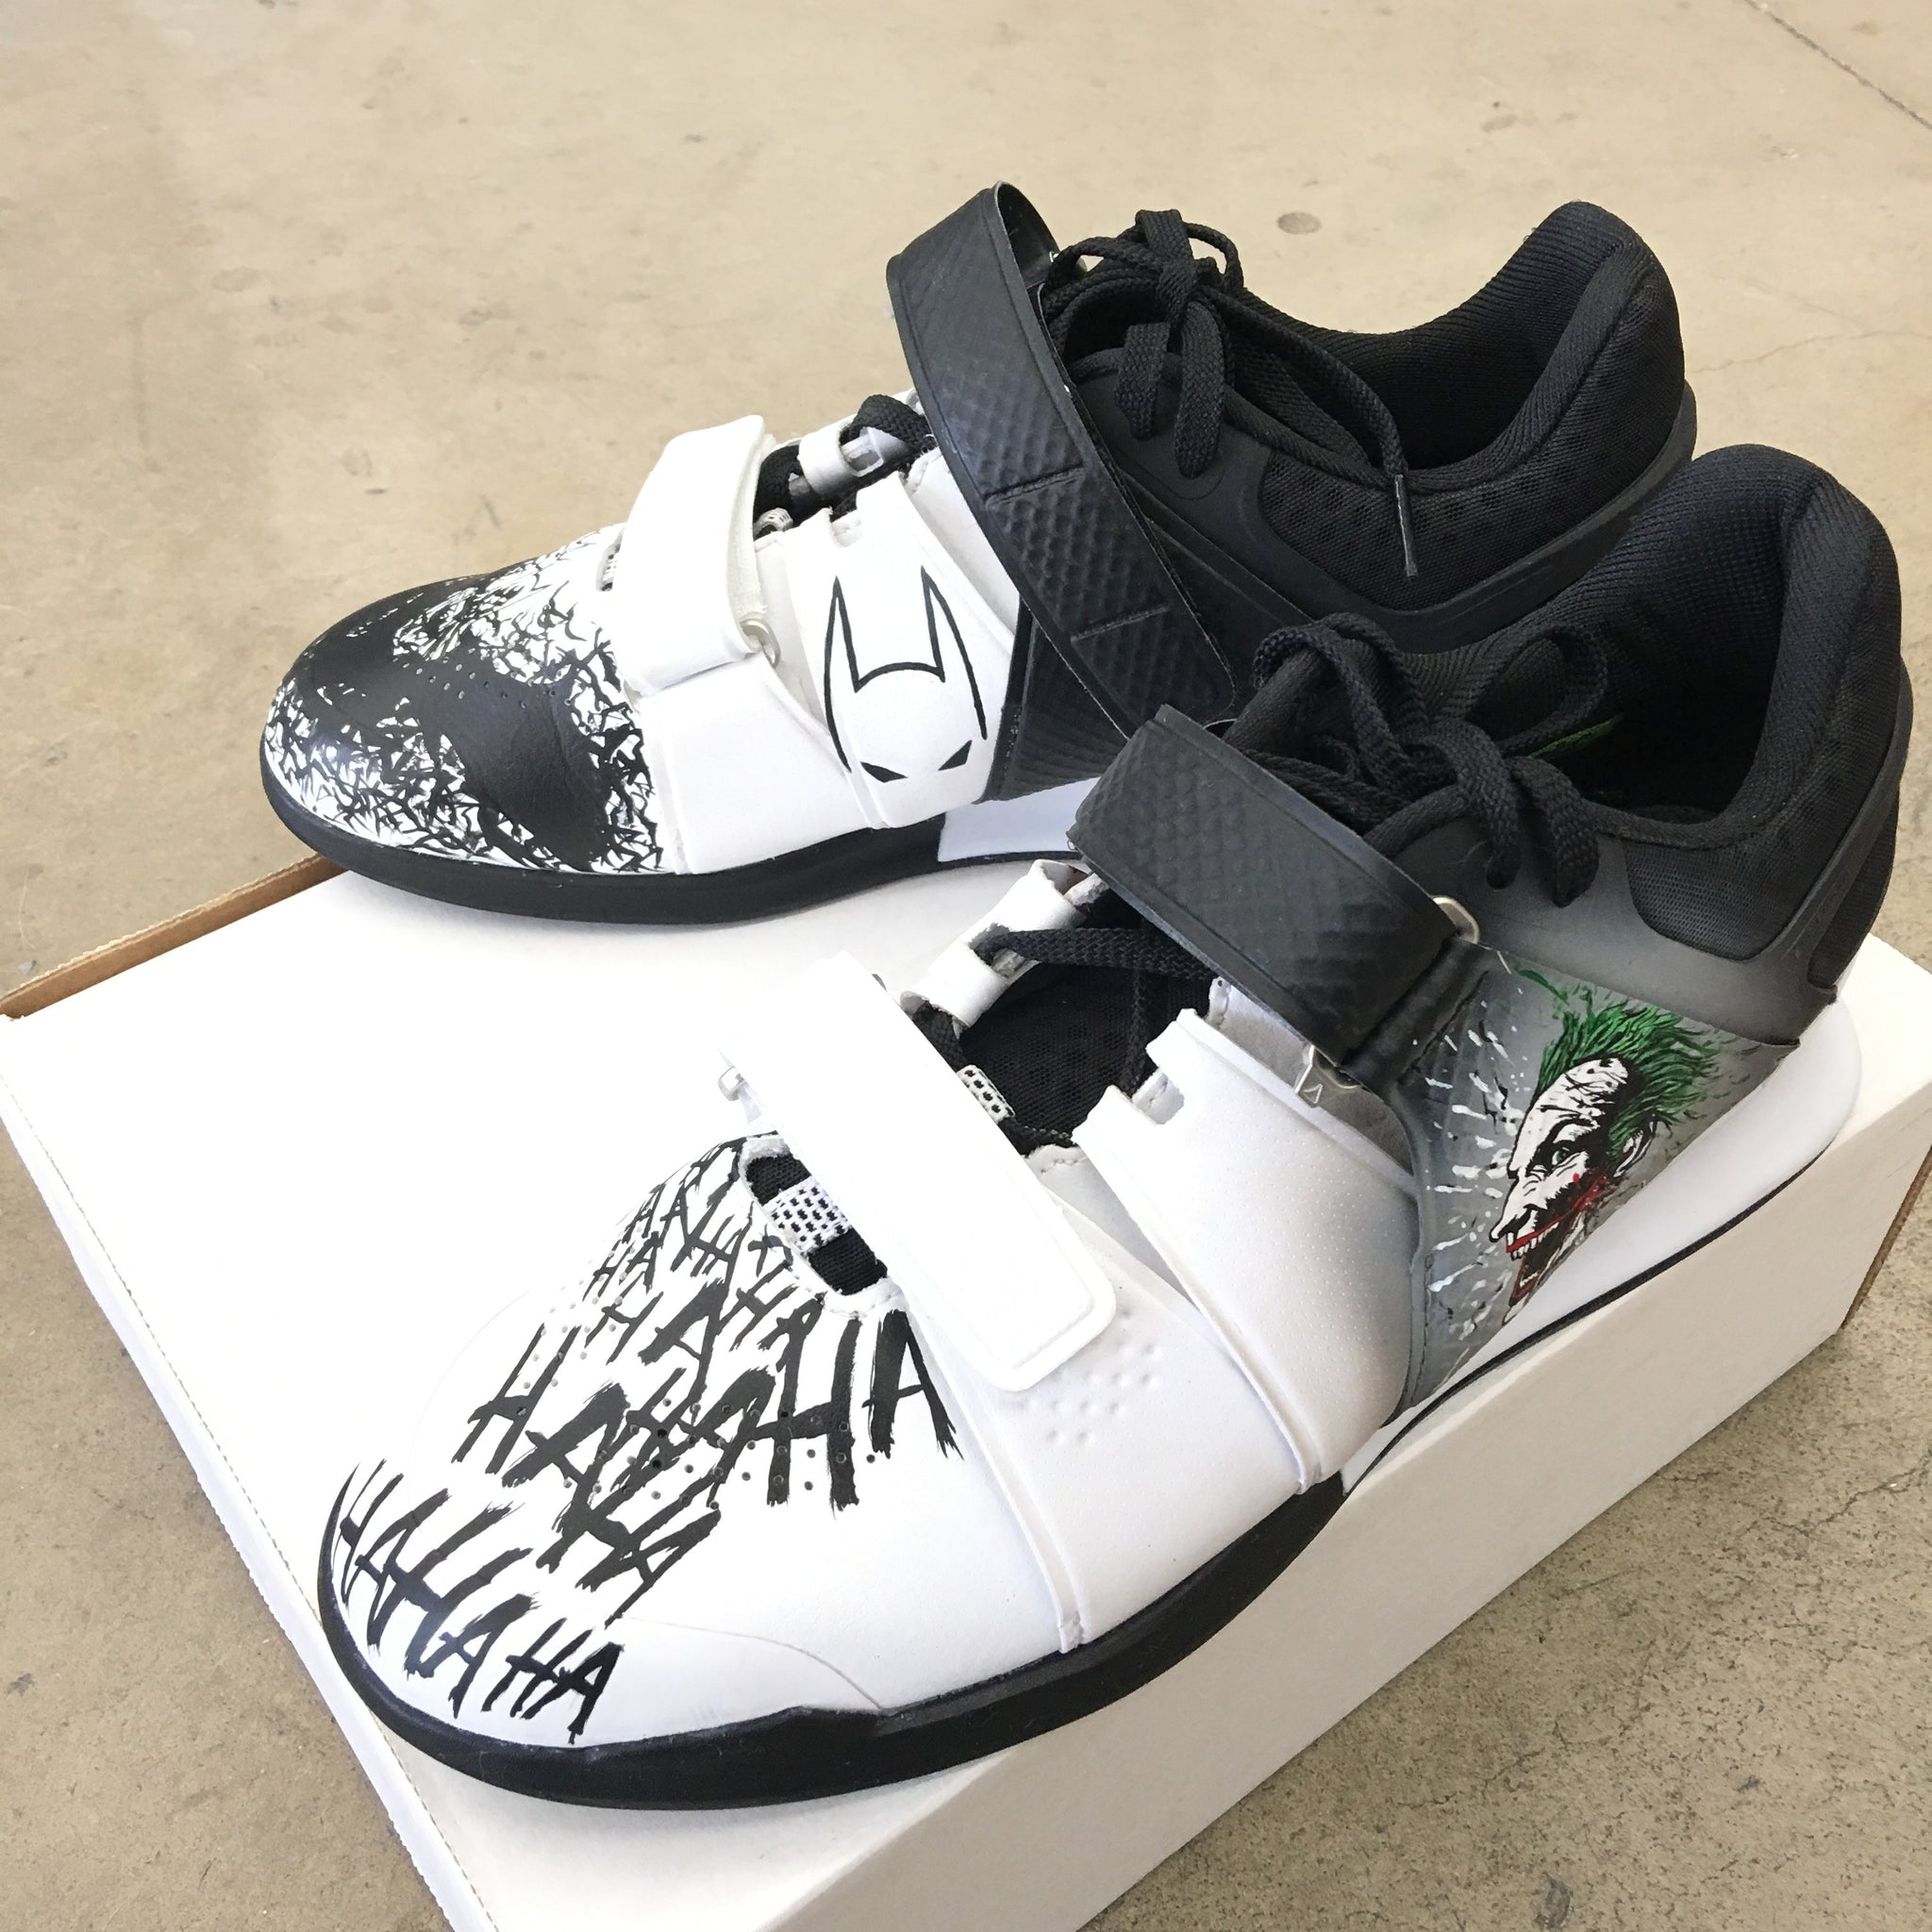 ... Custom Painted Batman Joker Reebok Legacy Weightlifting Shoes ...